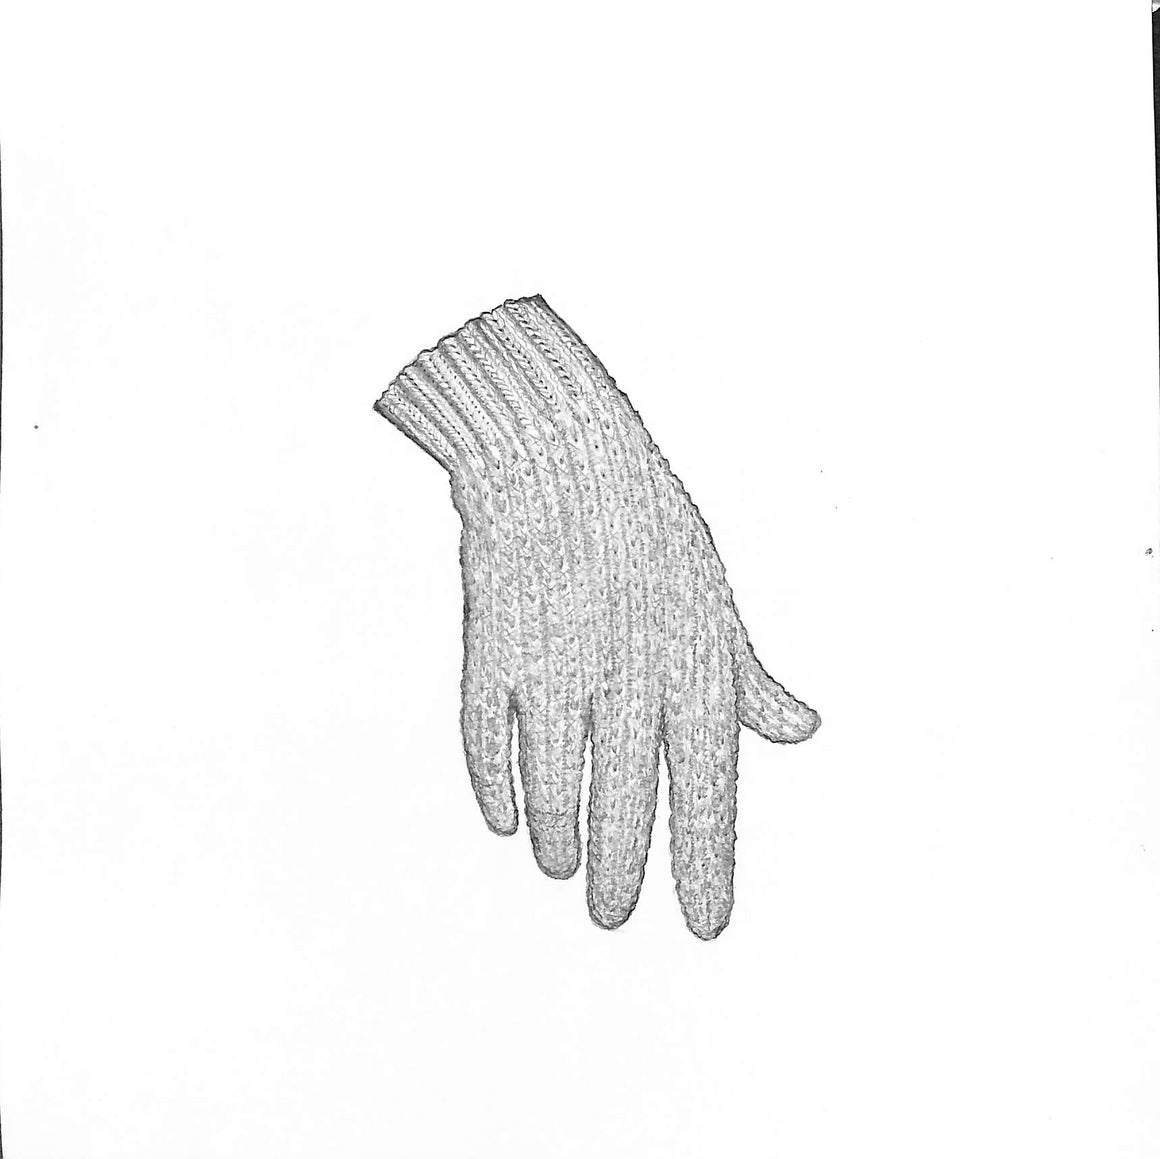 Crocheted Cotton Glove